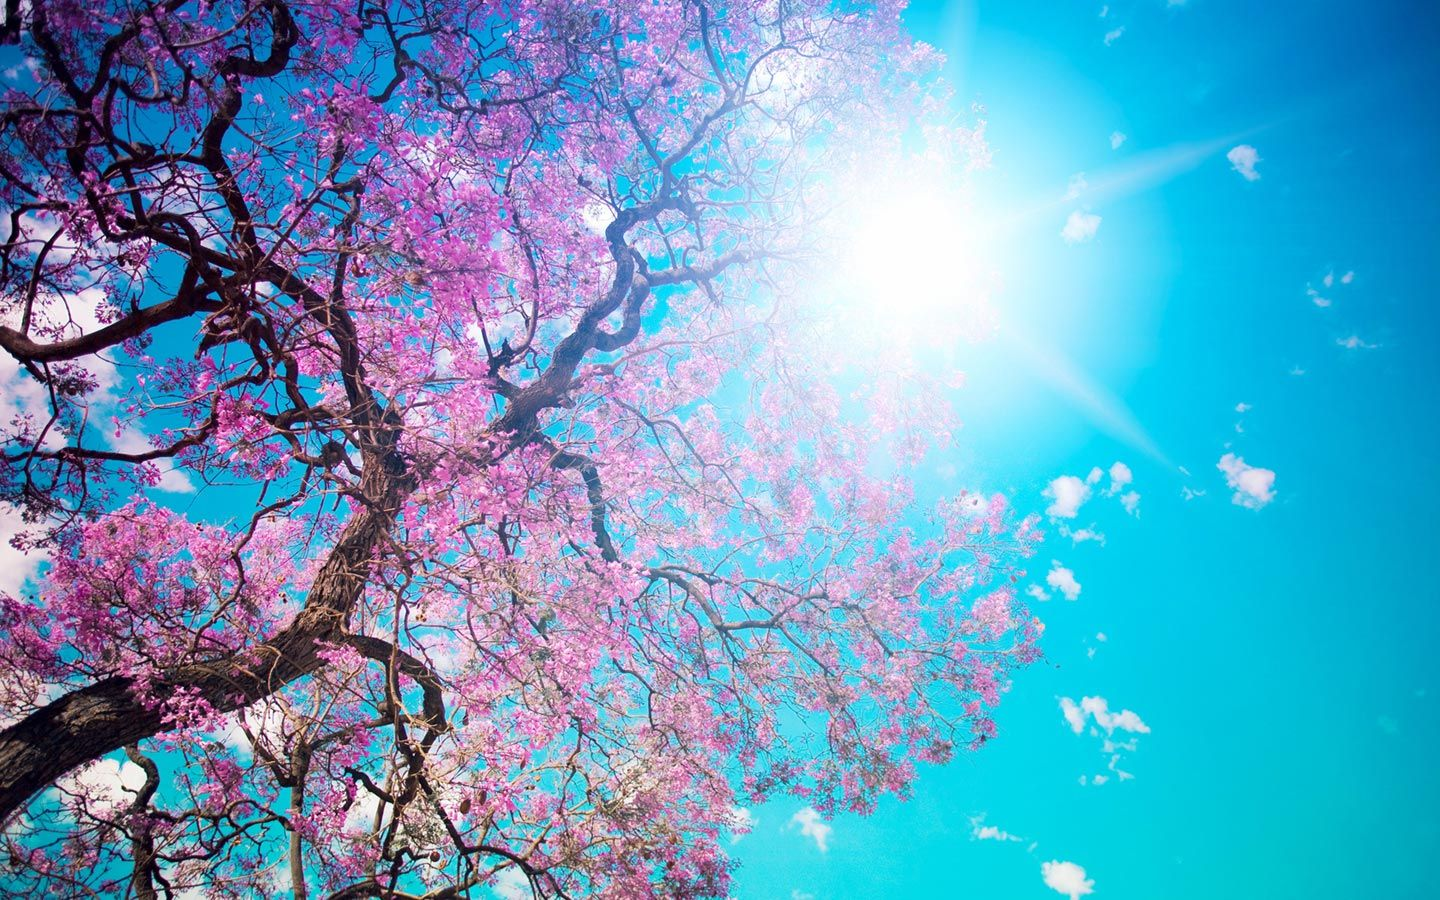 Hd wallpaper spring - Spring Wallpaper Hd